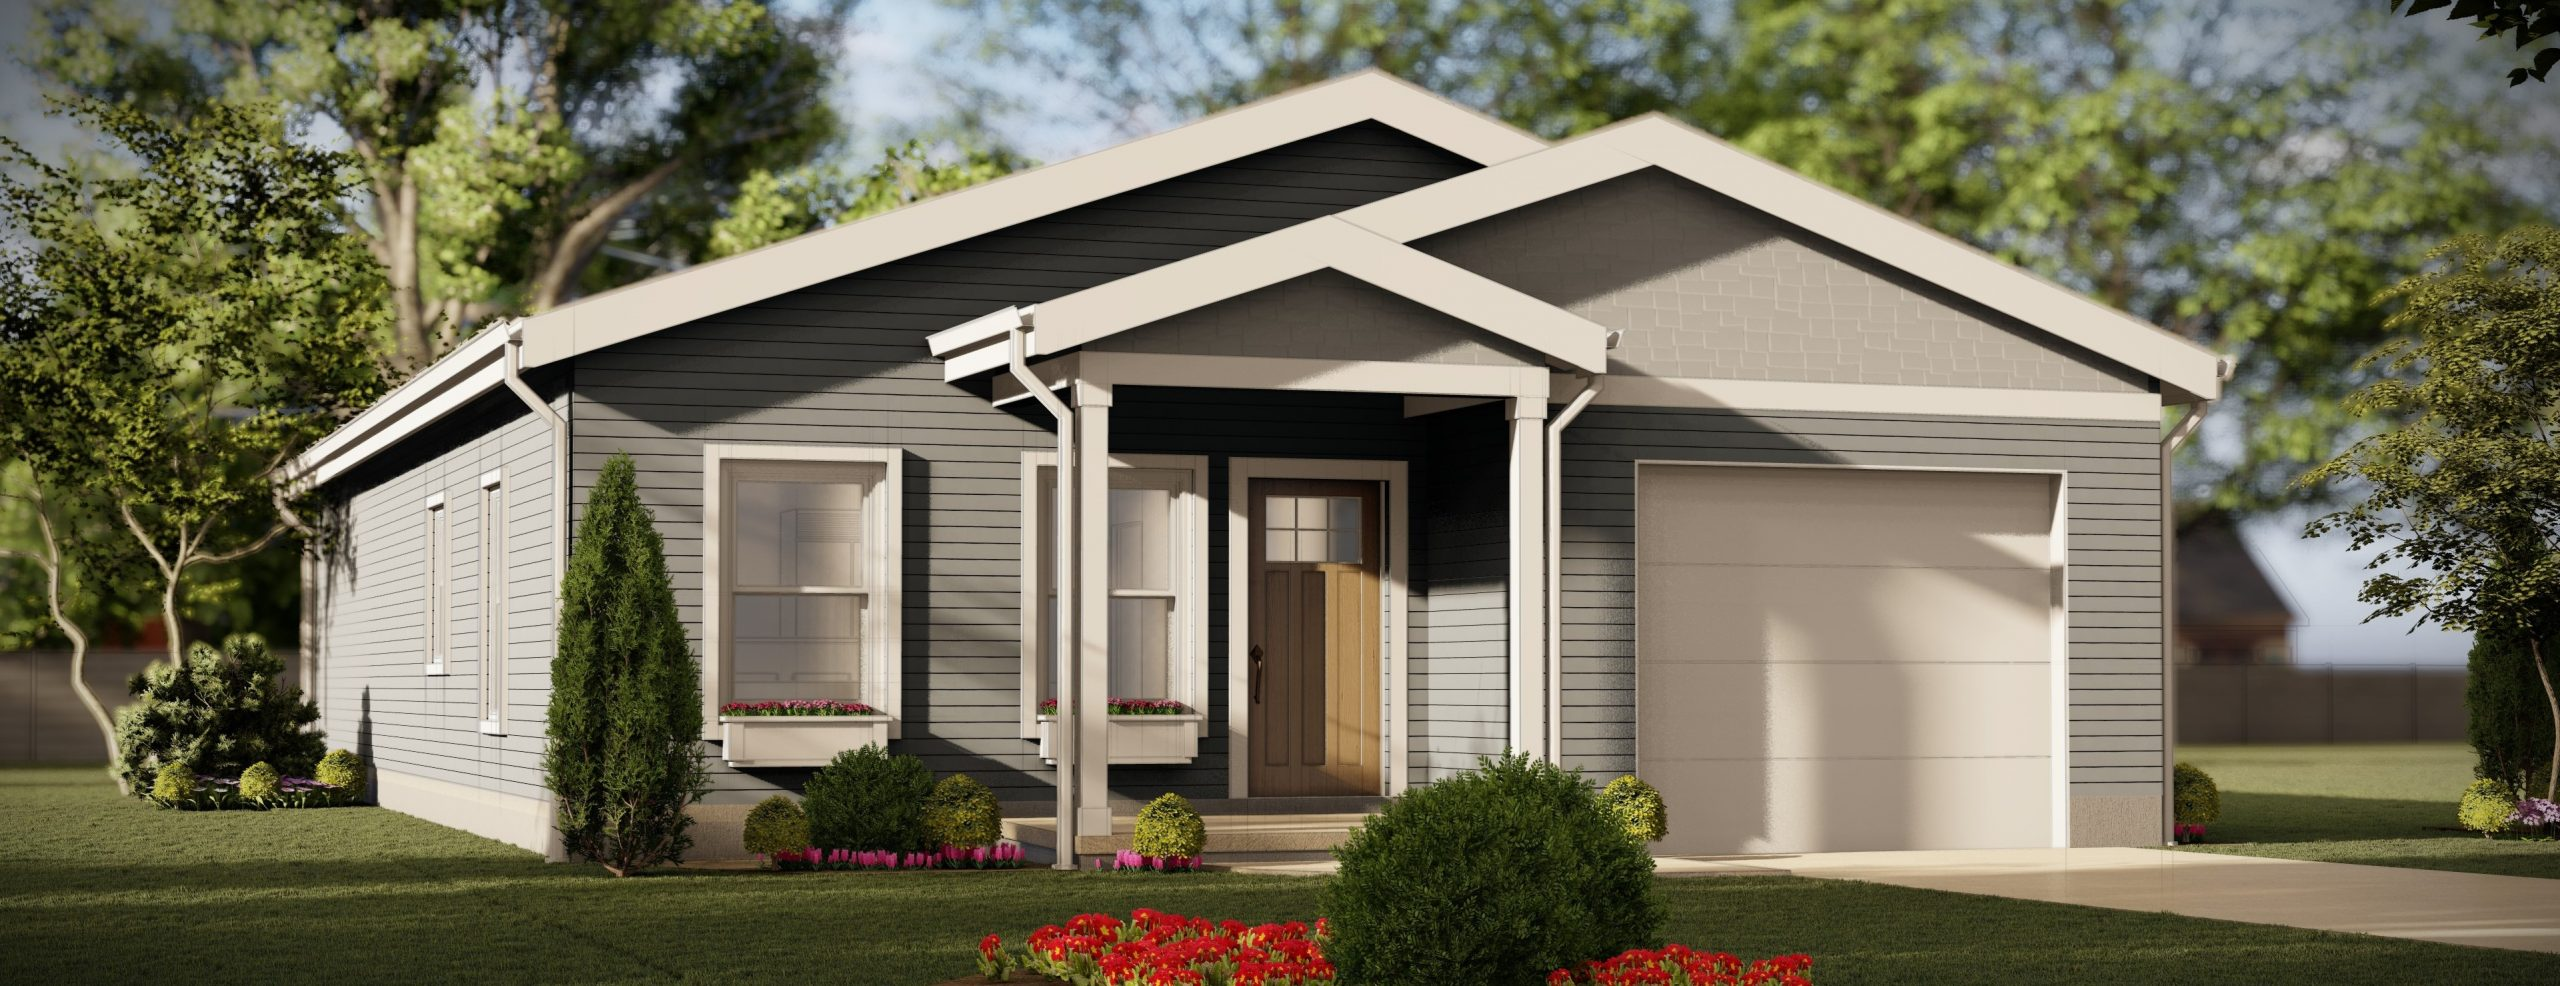 New Homes in Parma Heights!